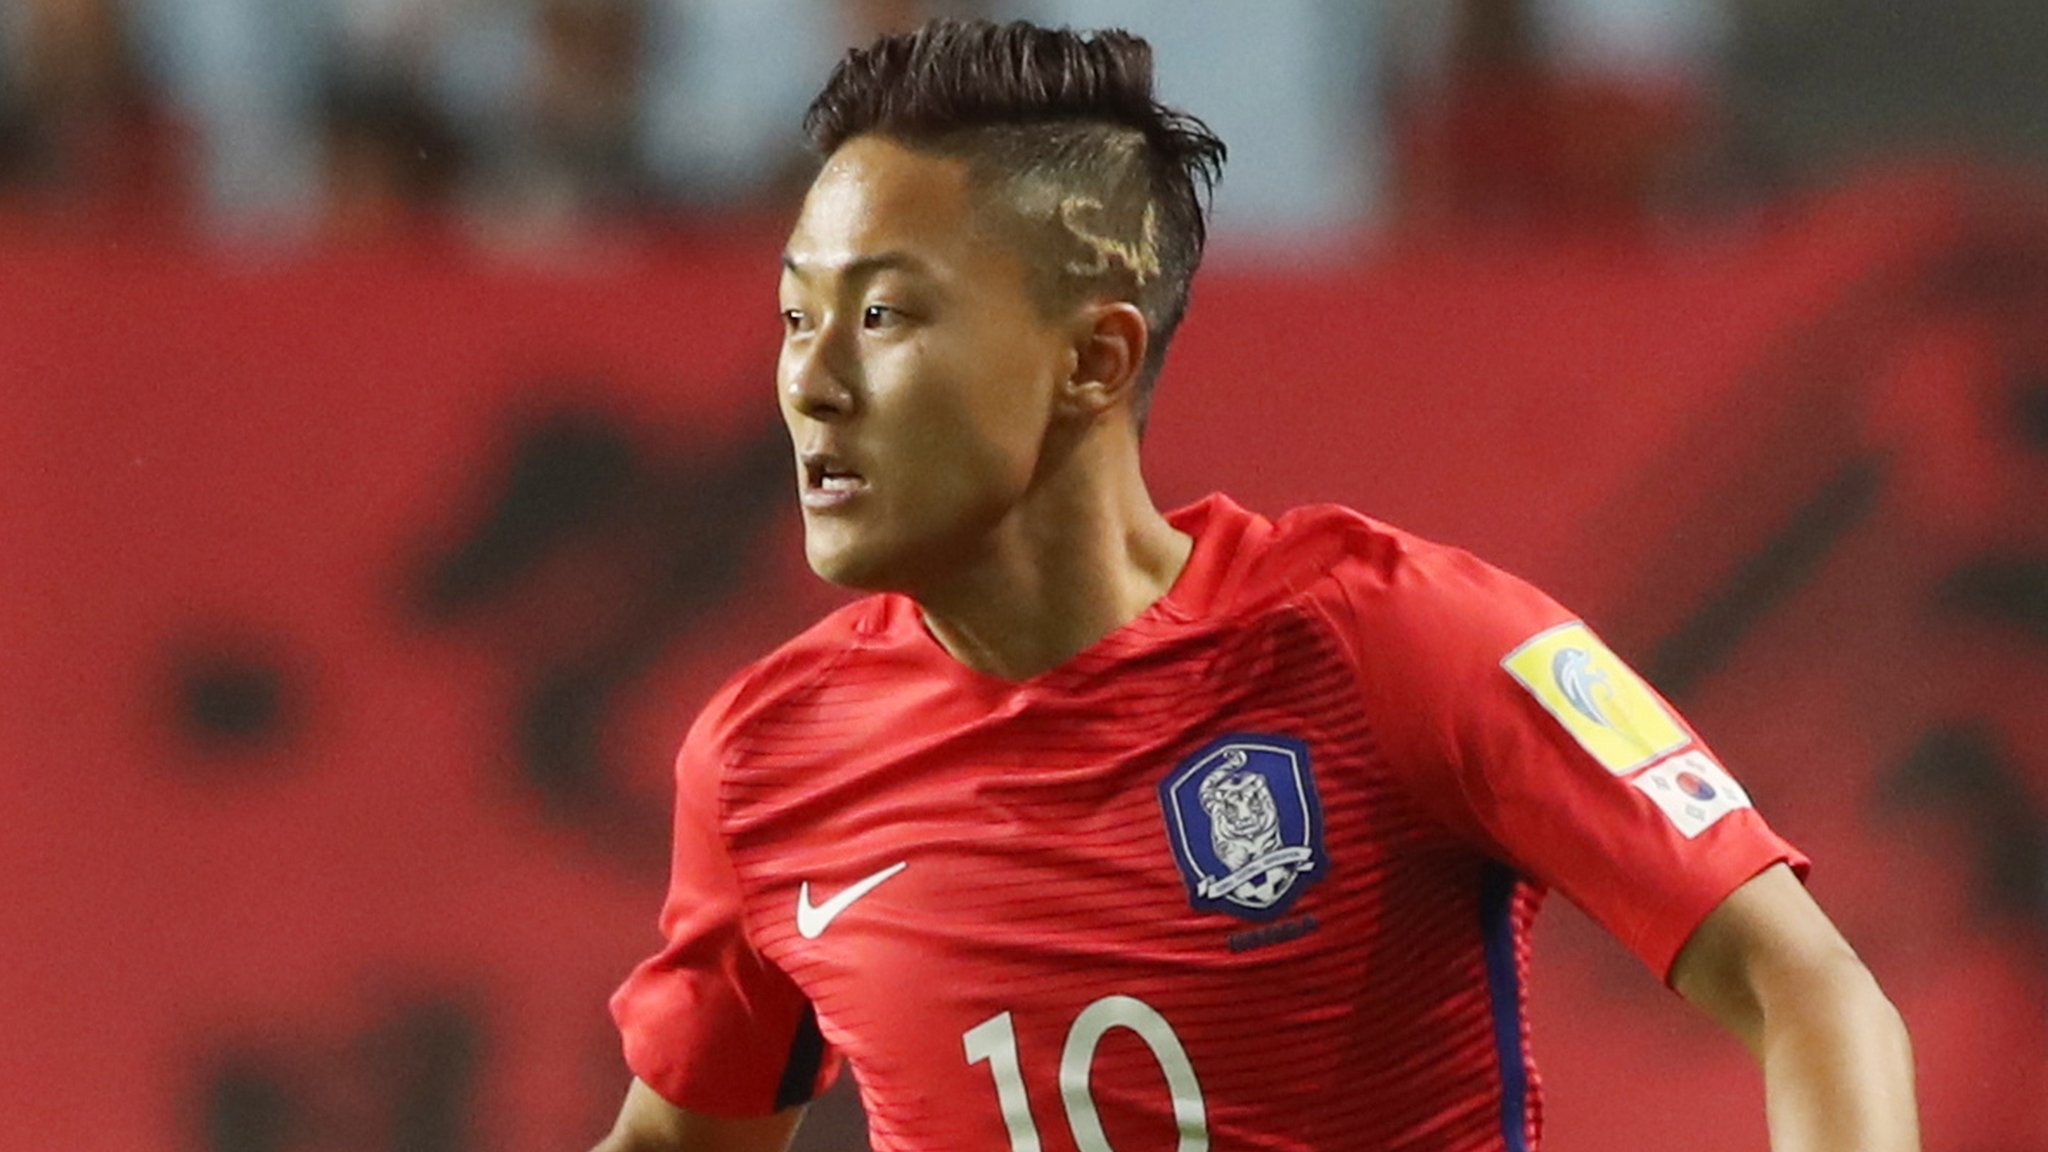 Lee named in South Korea's World Cup squad - a week after making debut